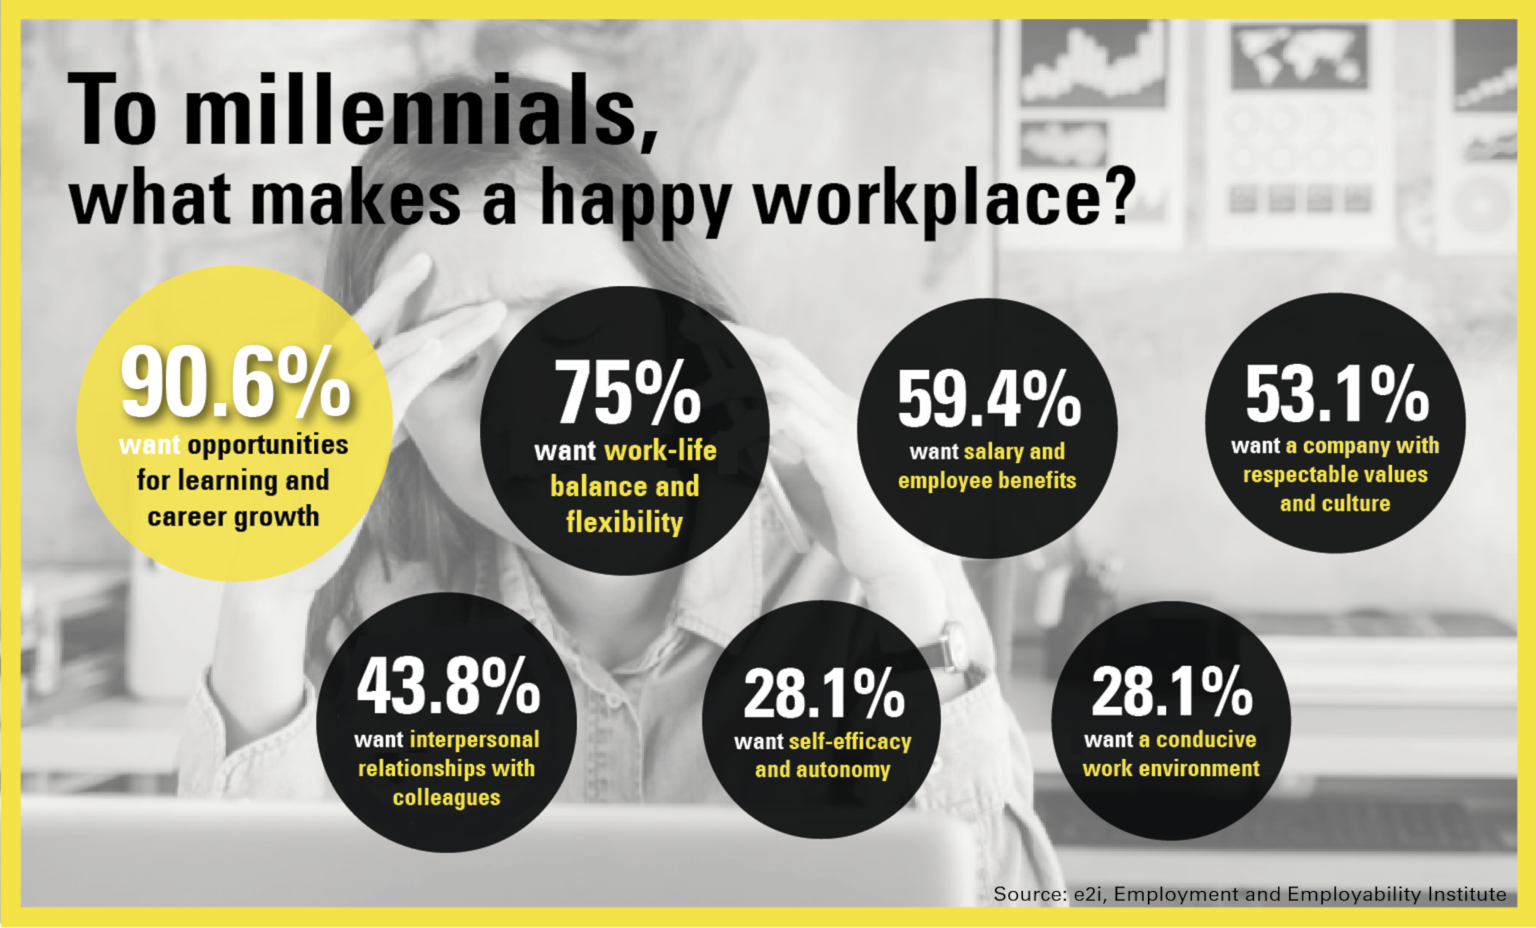 What Millennials Want - What makes a happy workplace